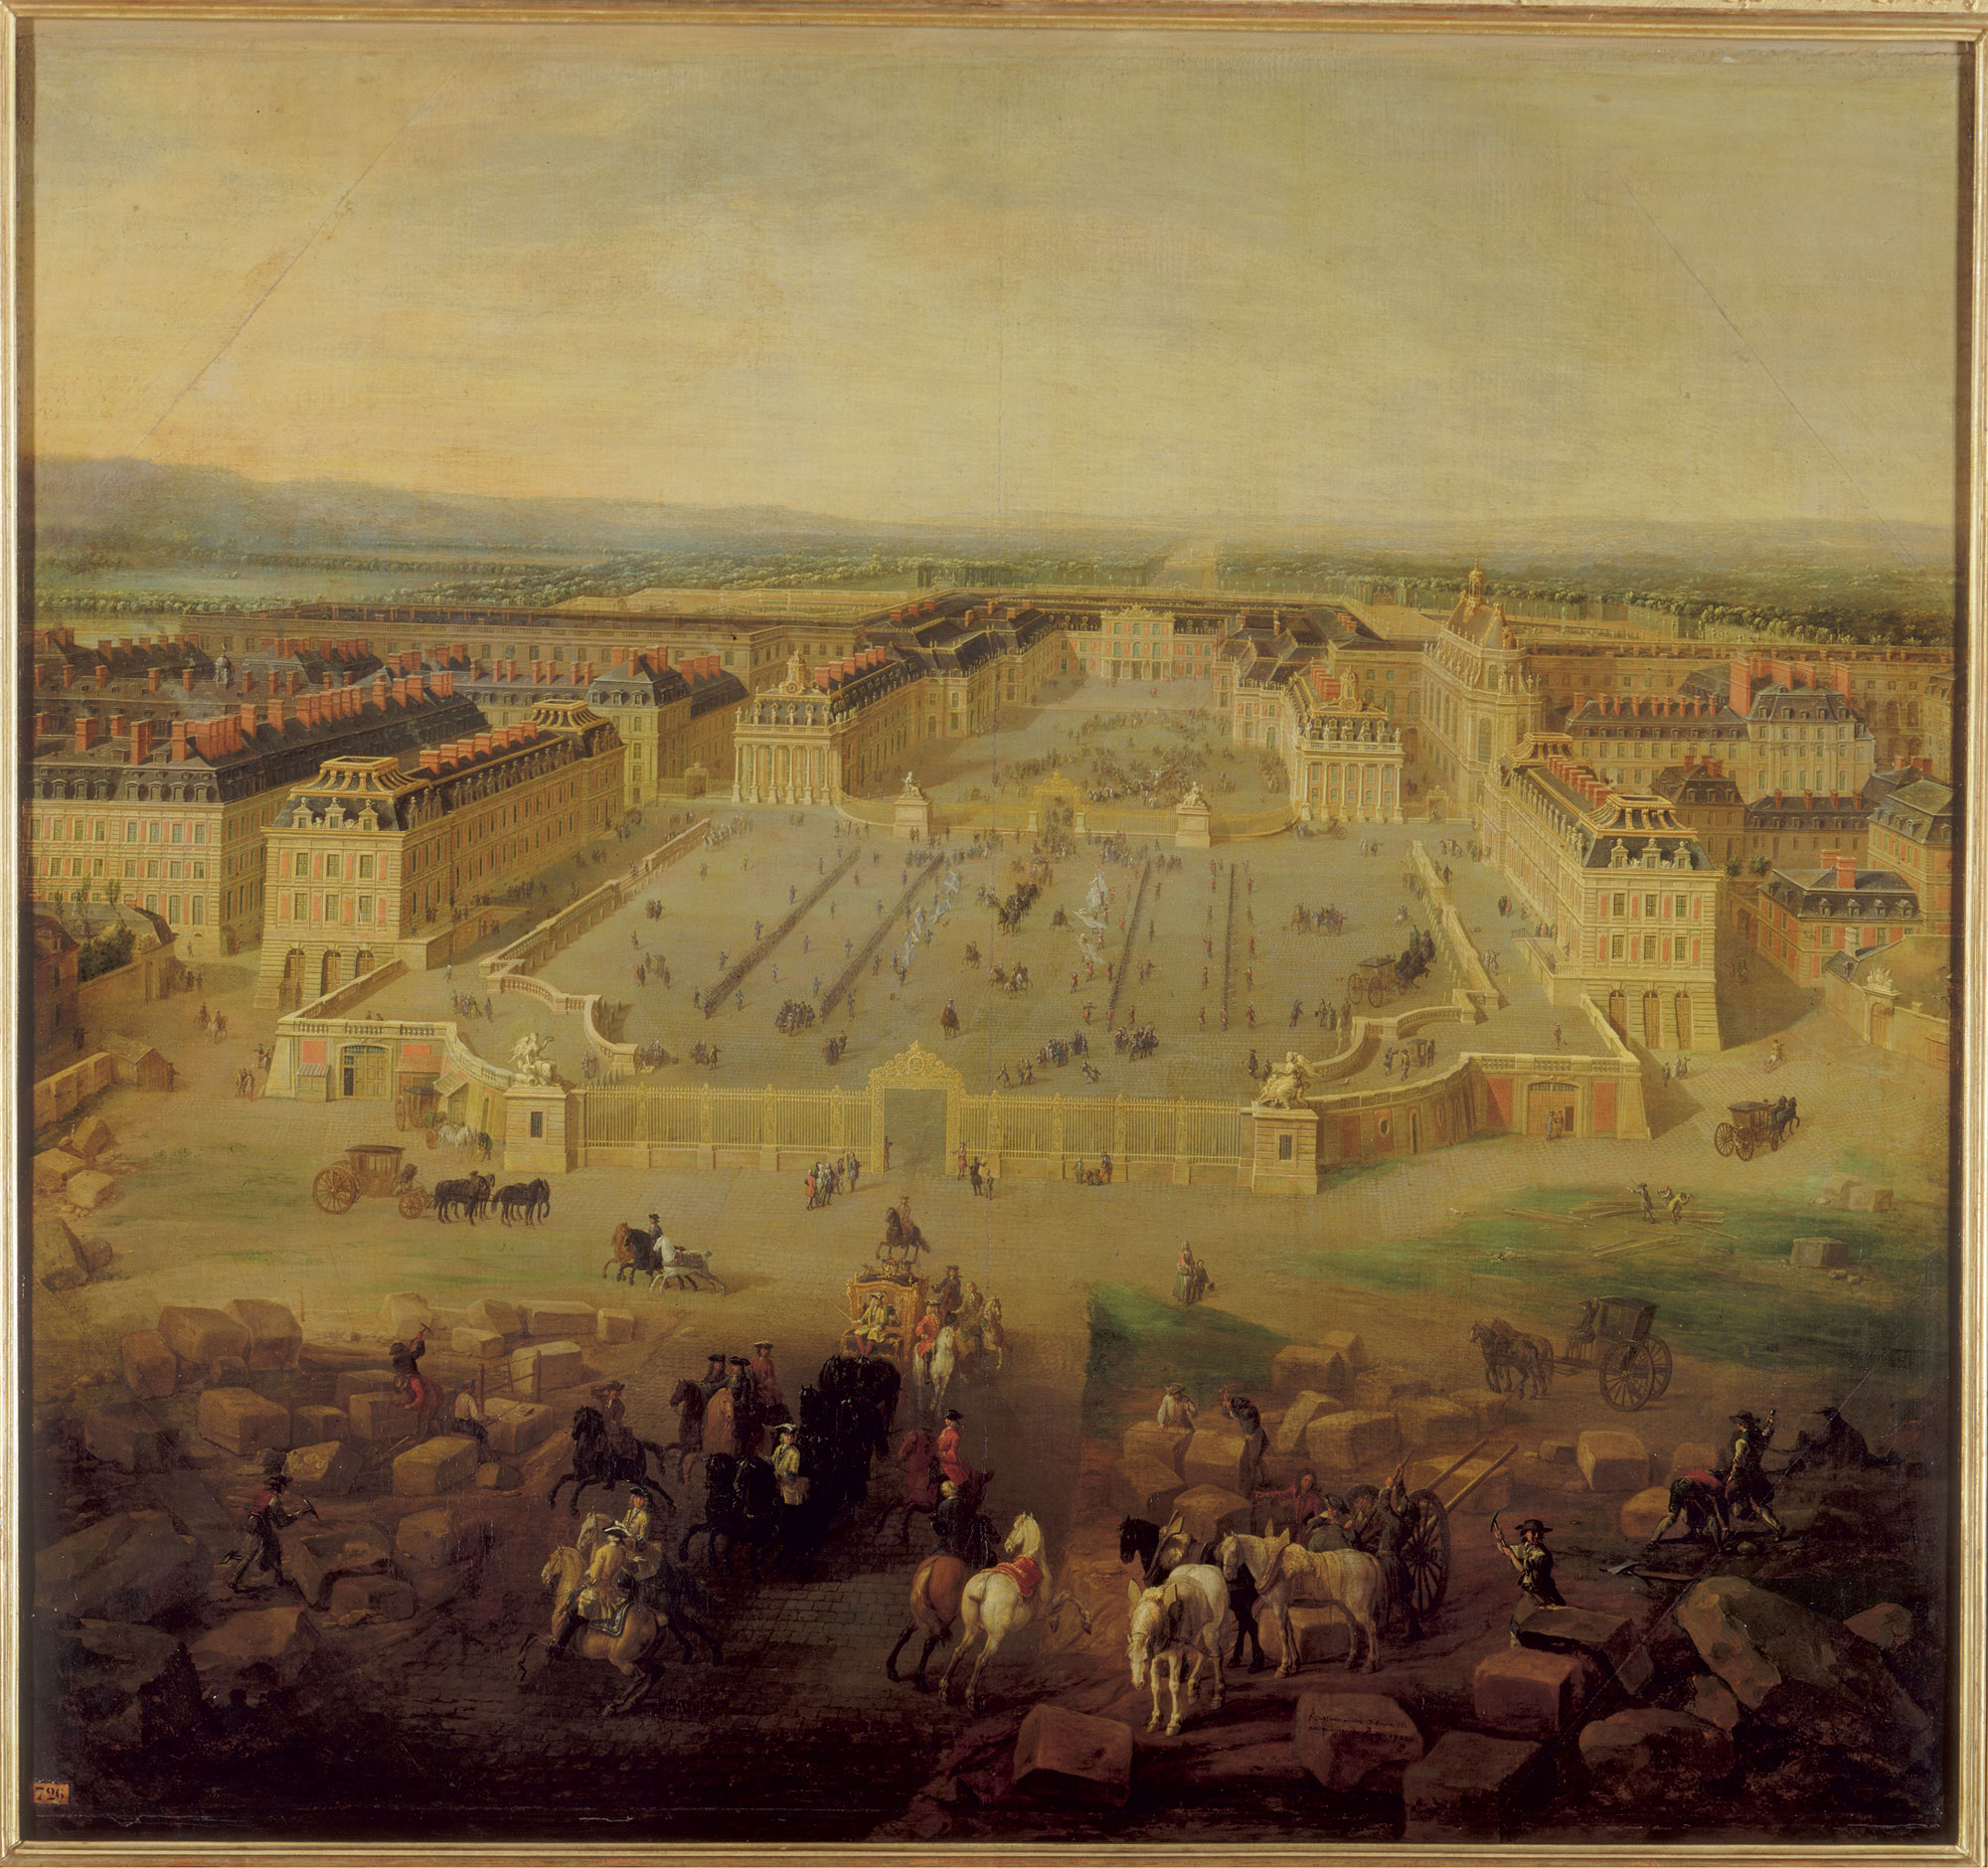 View of the palace of Versailles as seen from the Place d'Armes in 1722